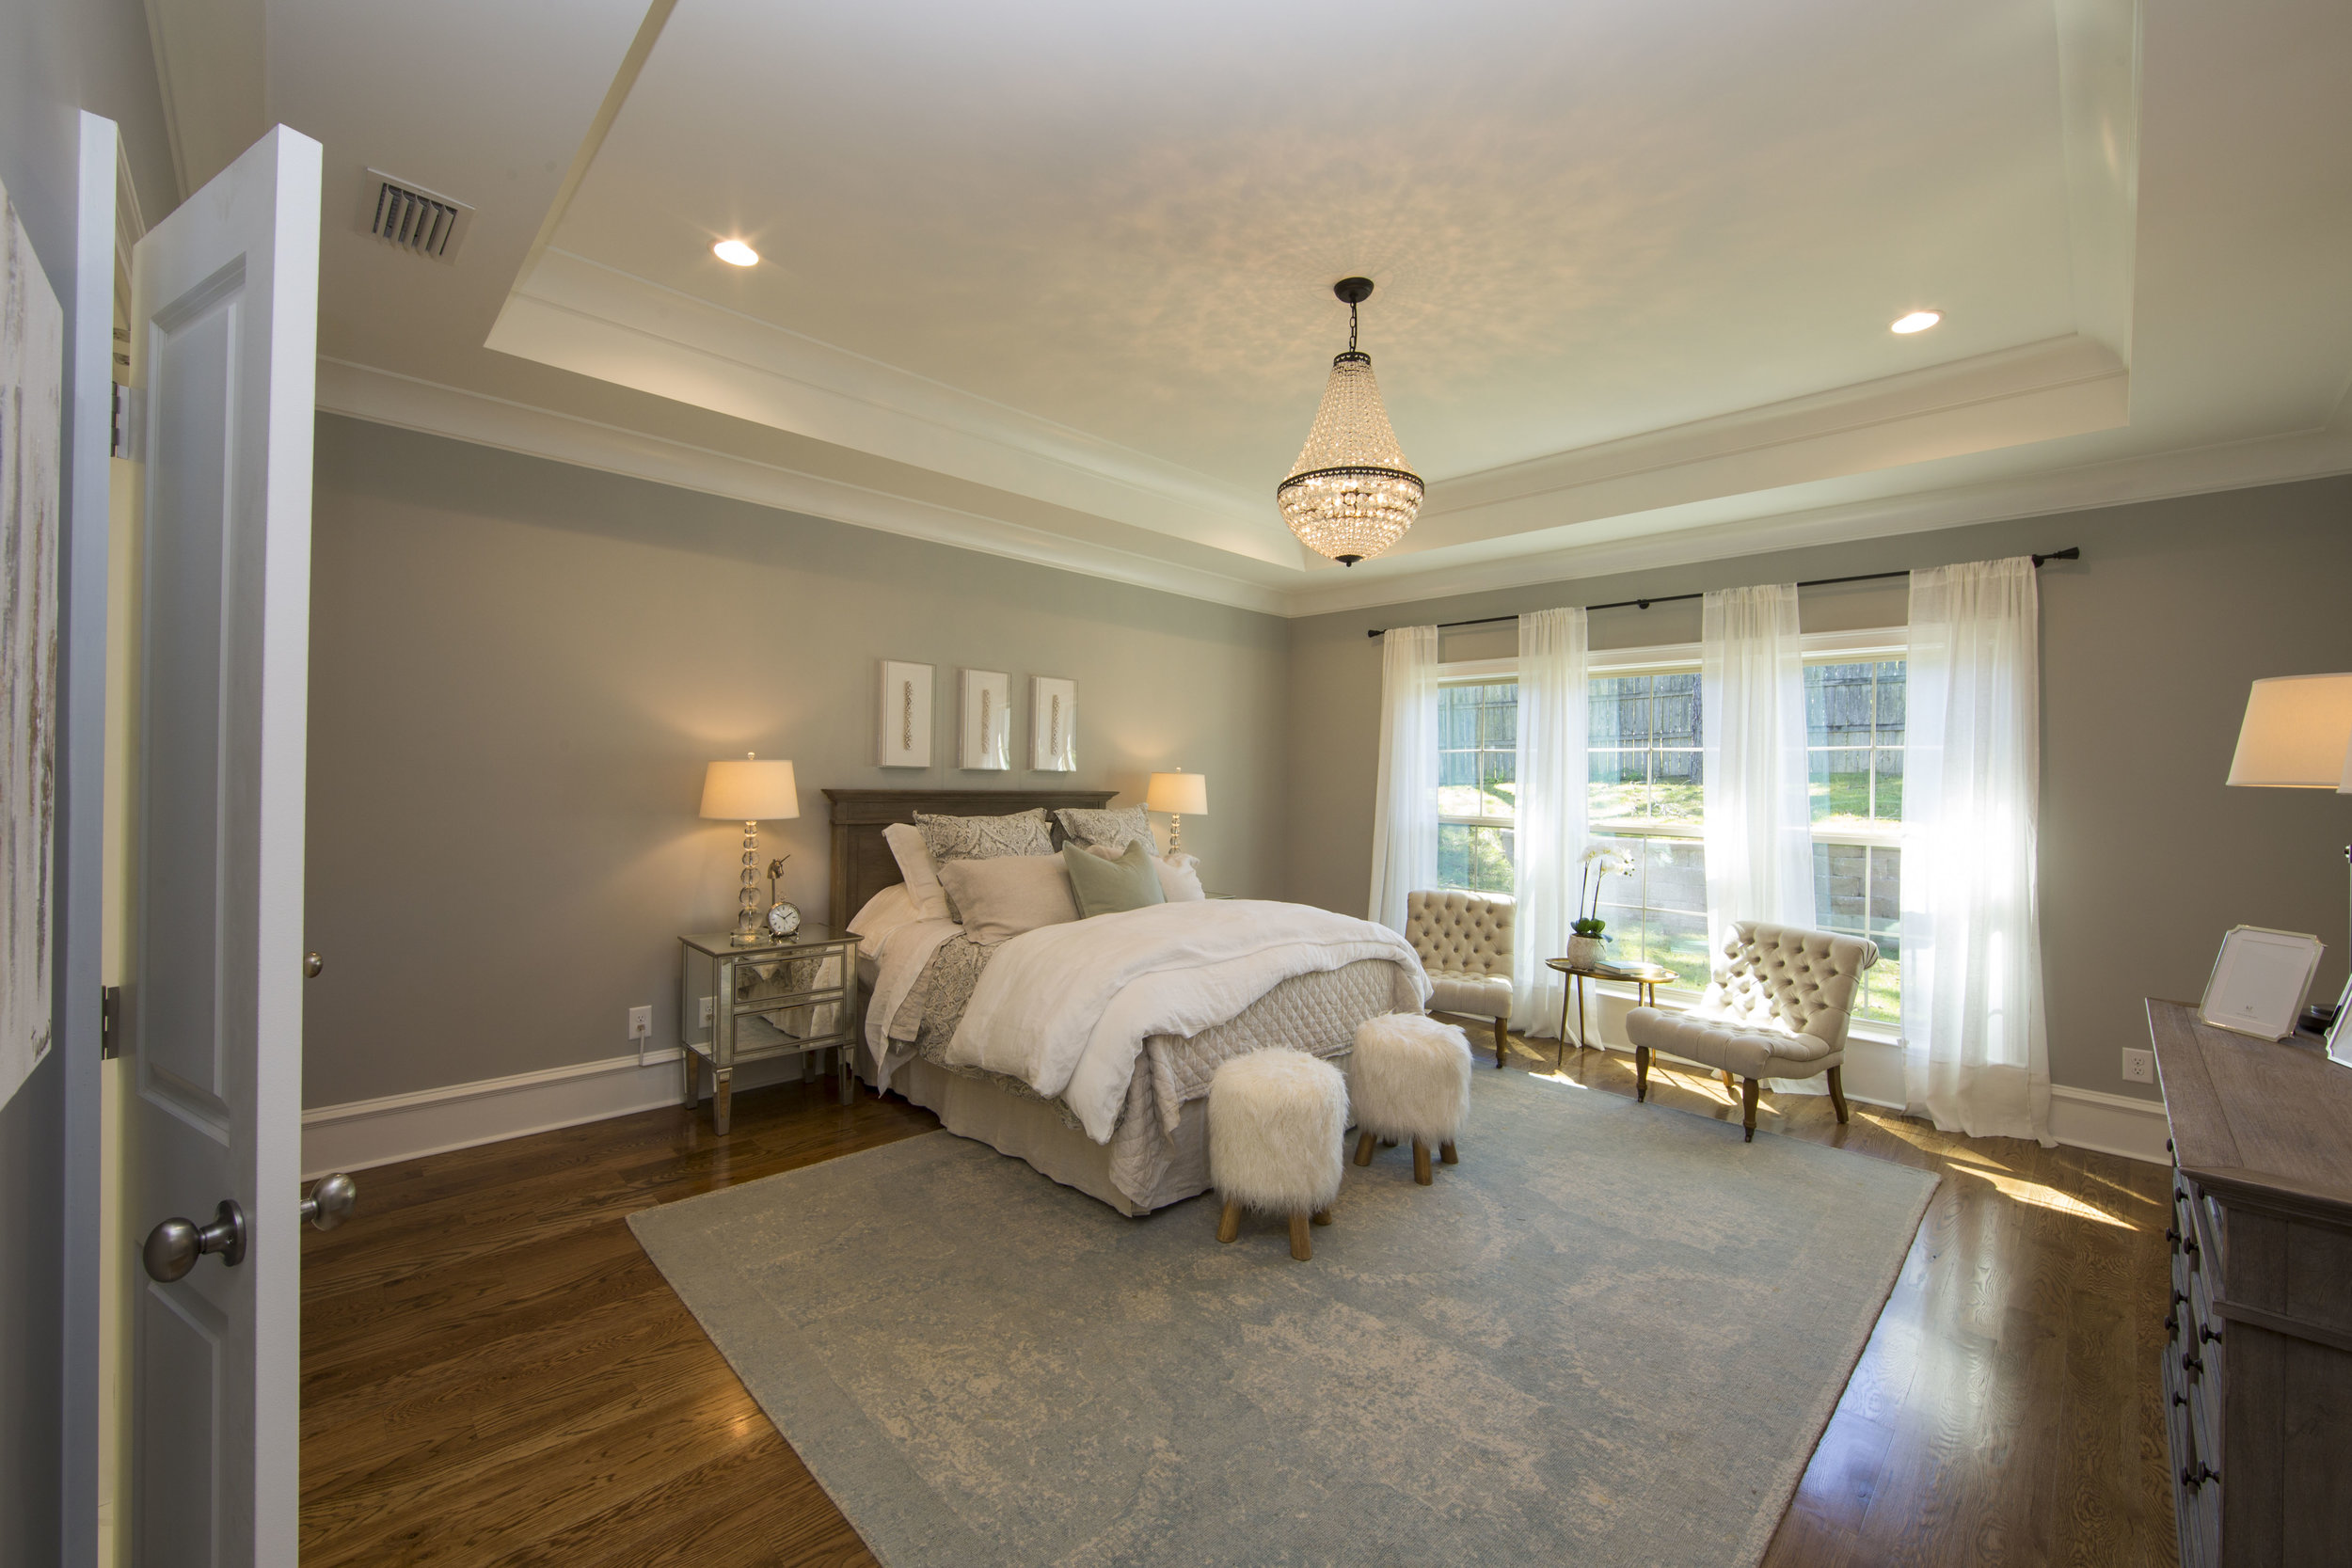 Wynnfield Court Parade of Homes 0r7a7028.jpg